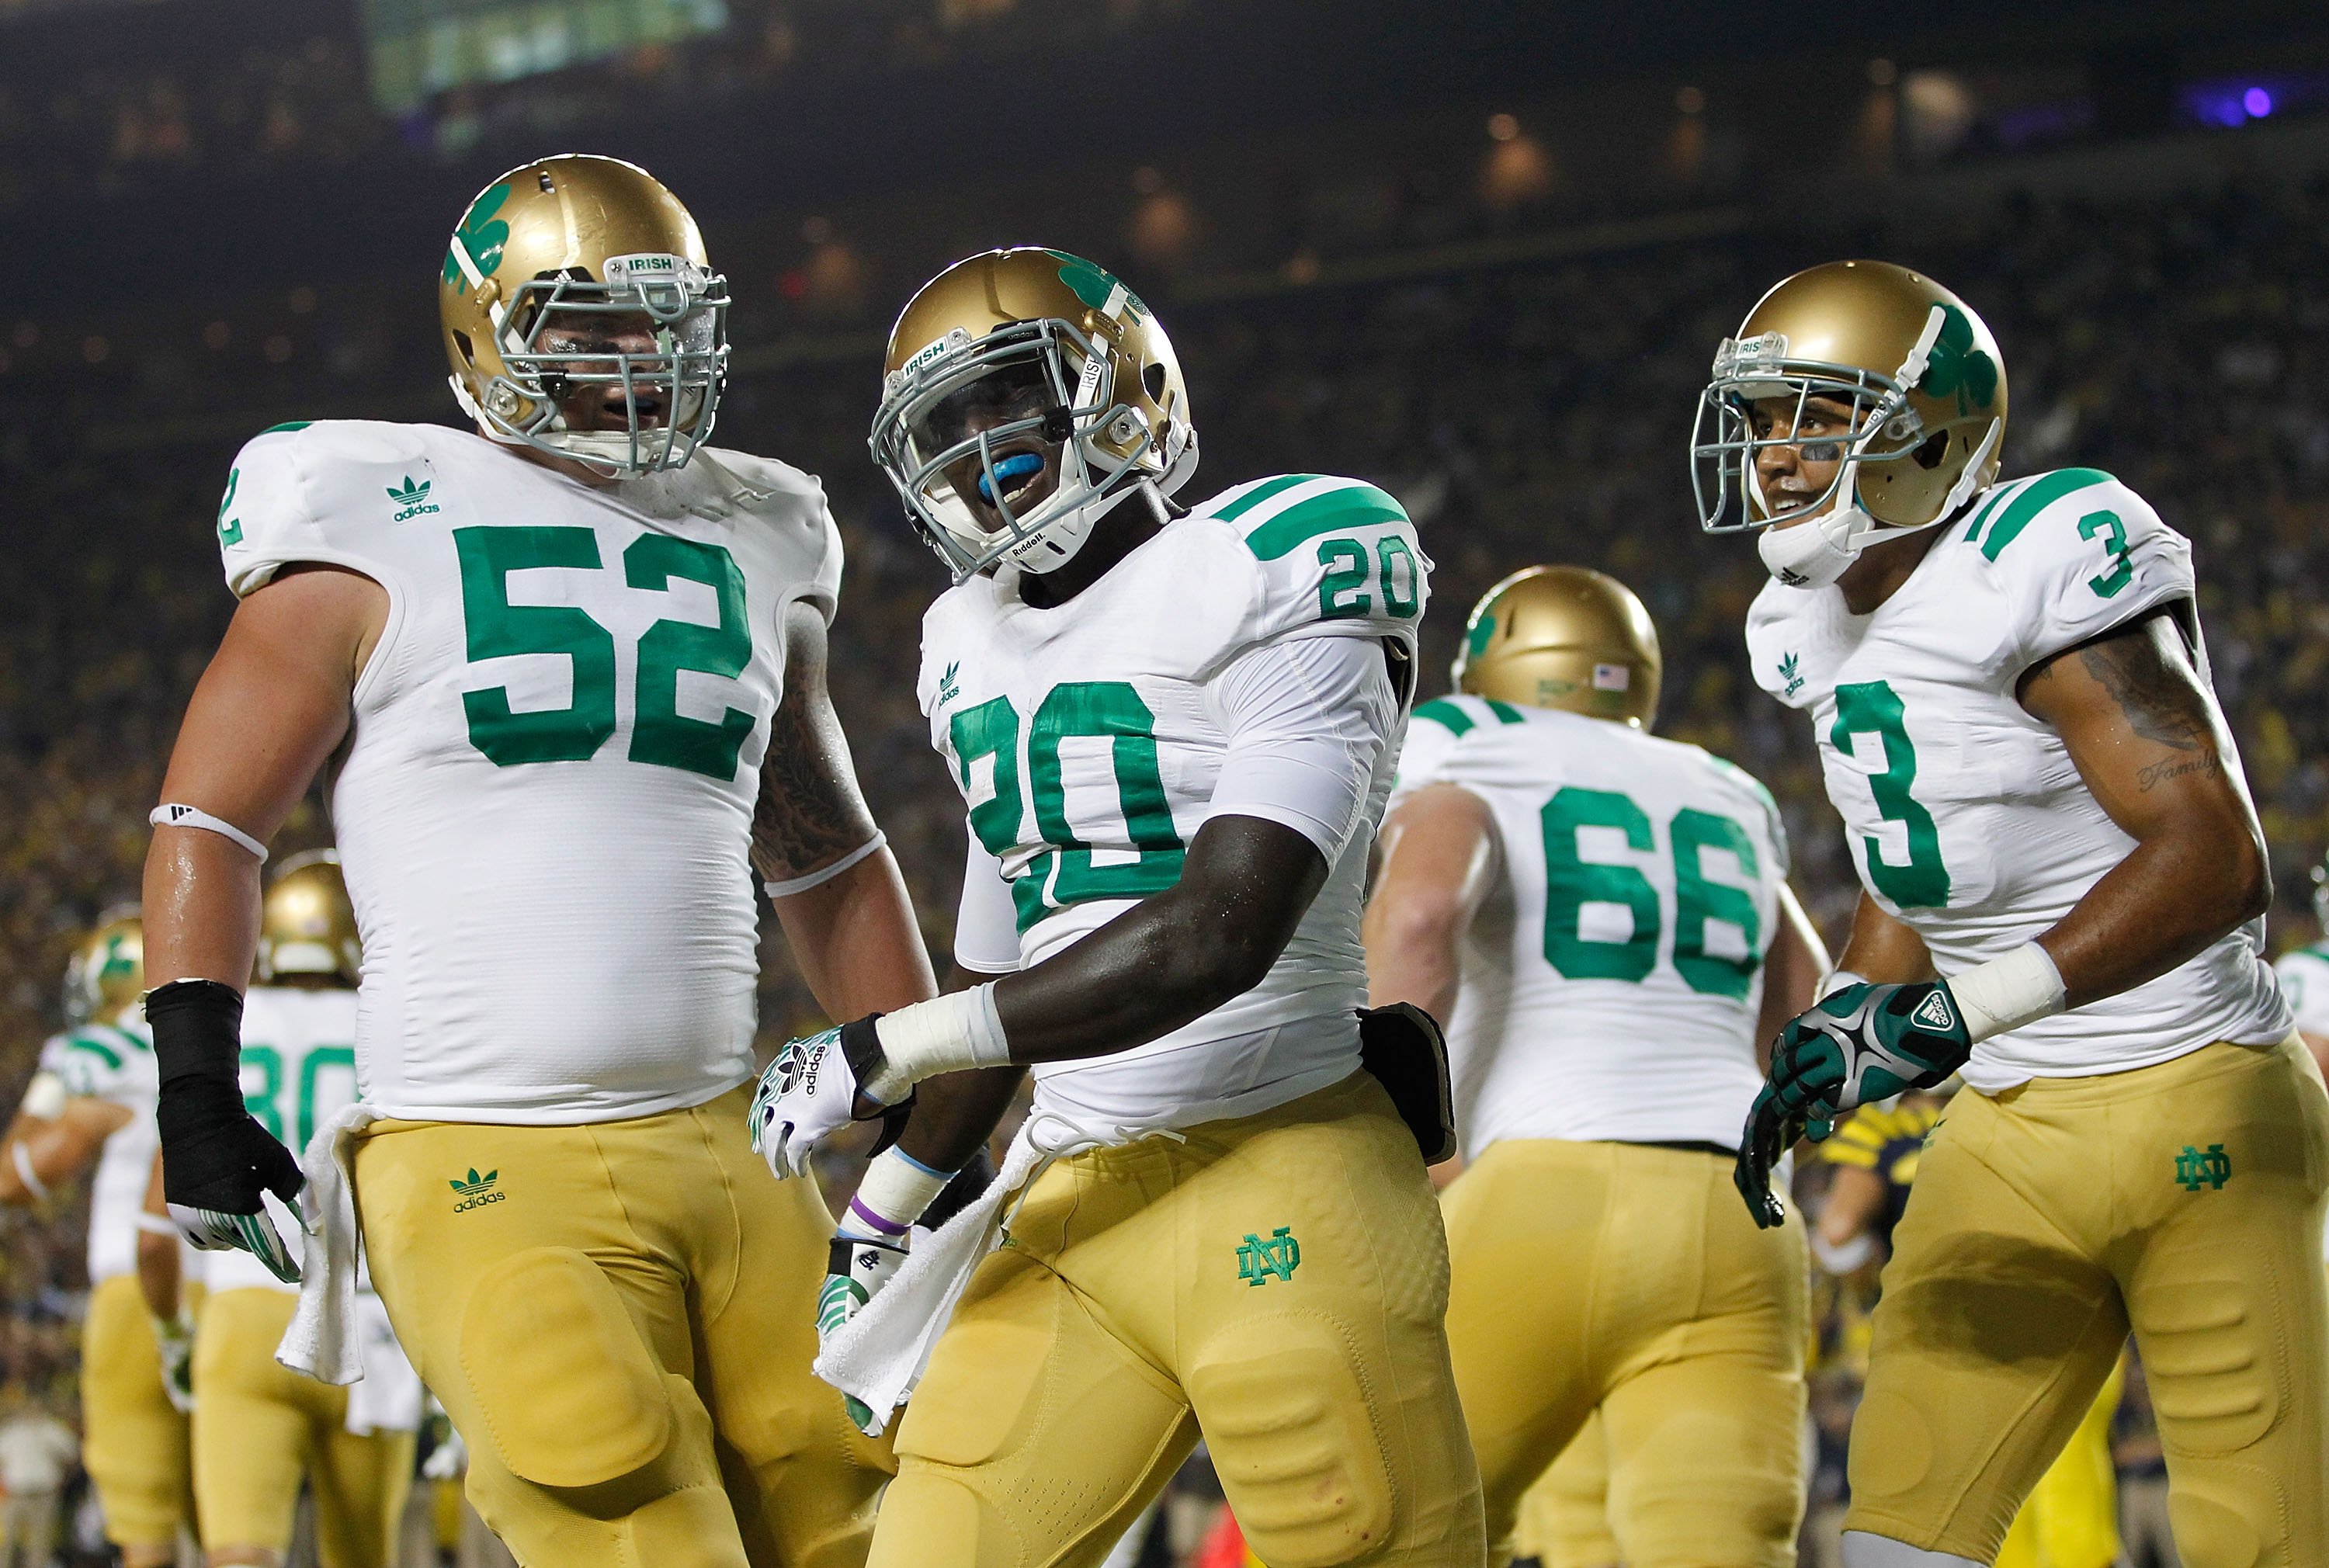 The 2007 Notre Dame Football Season Those Beautiful Green Jerseys